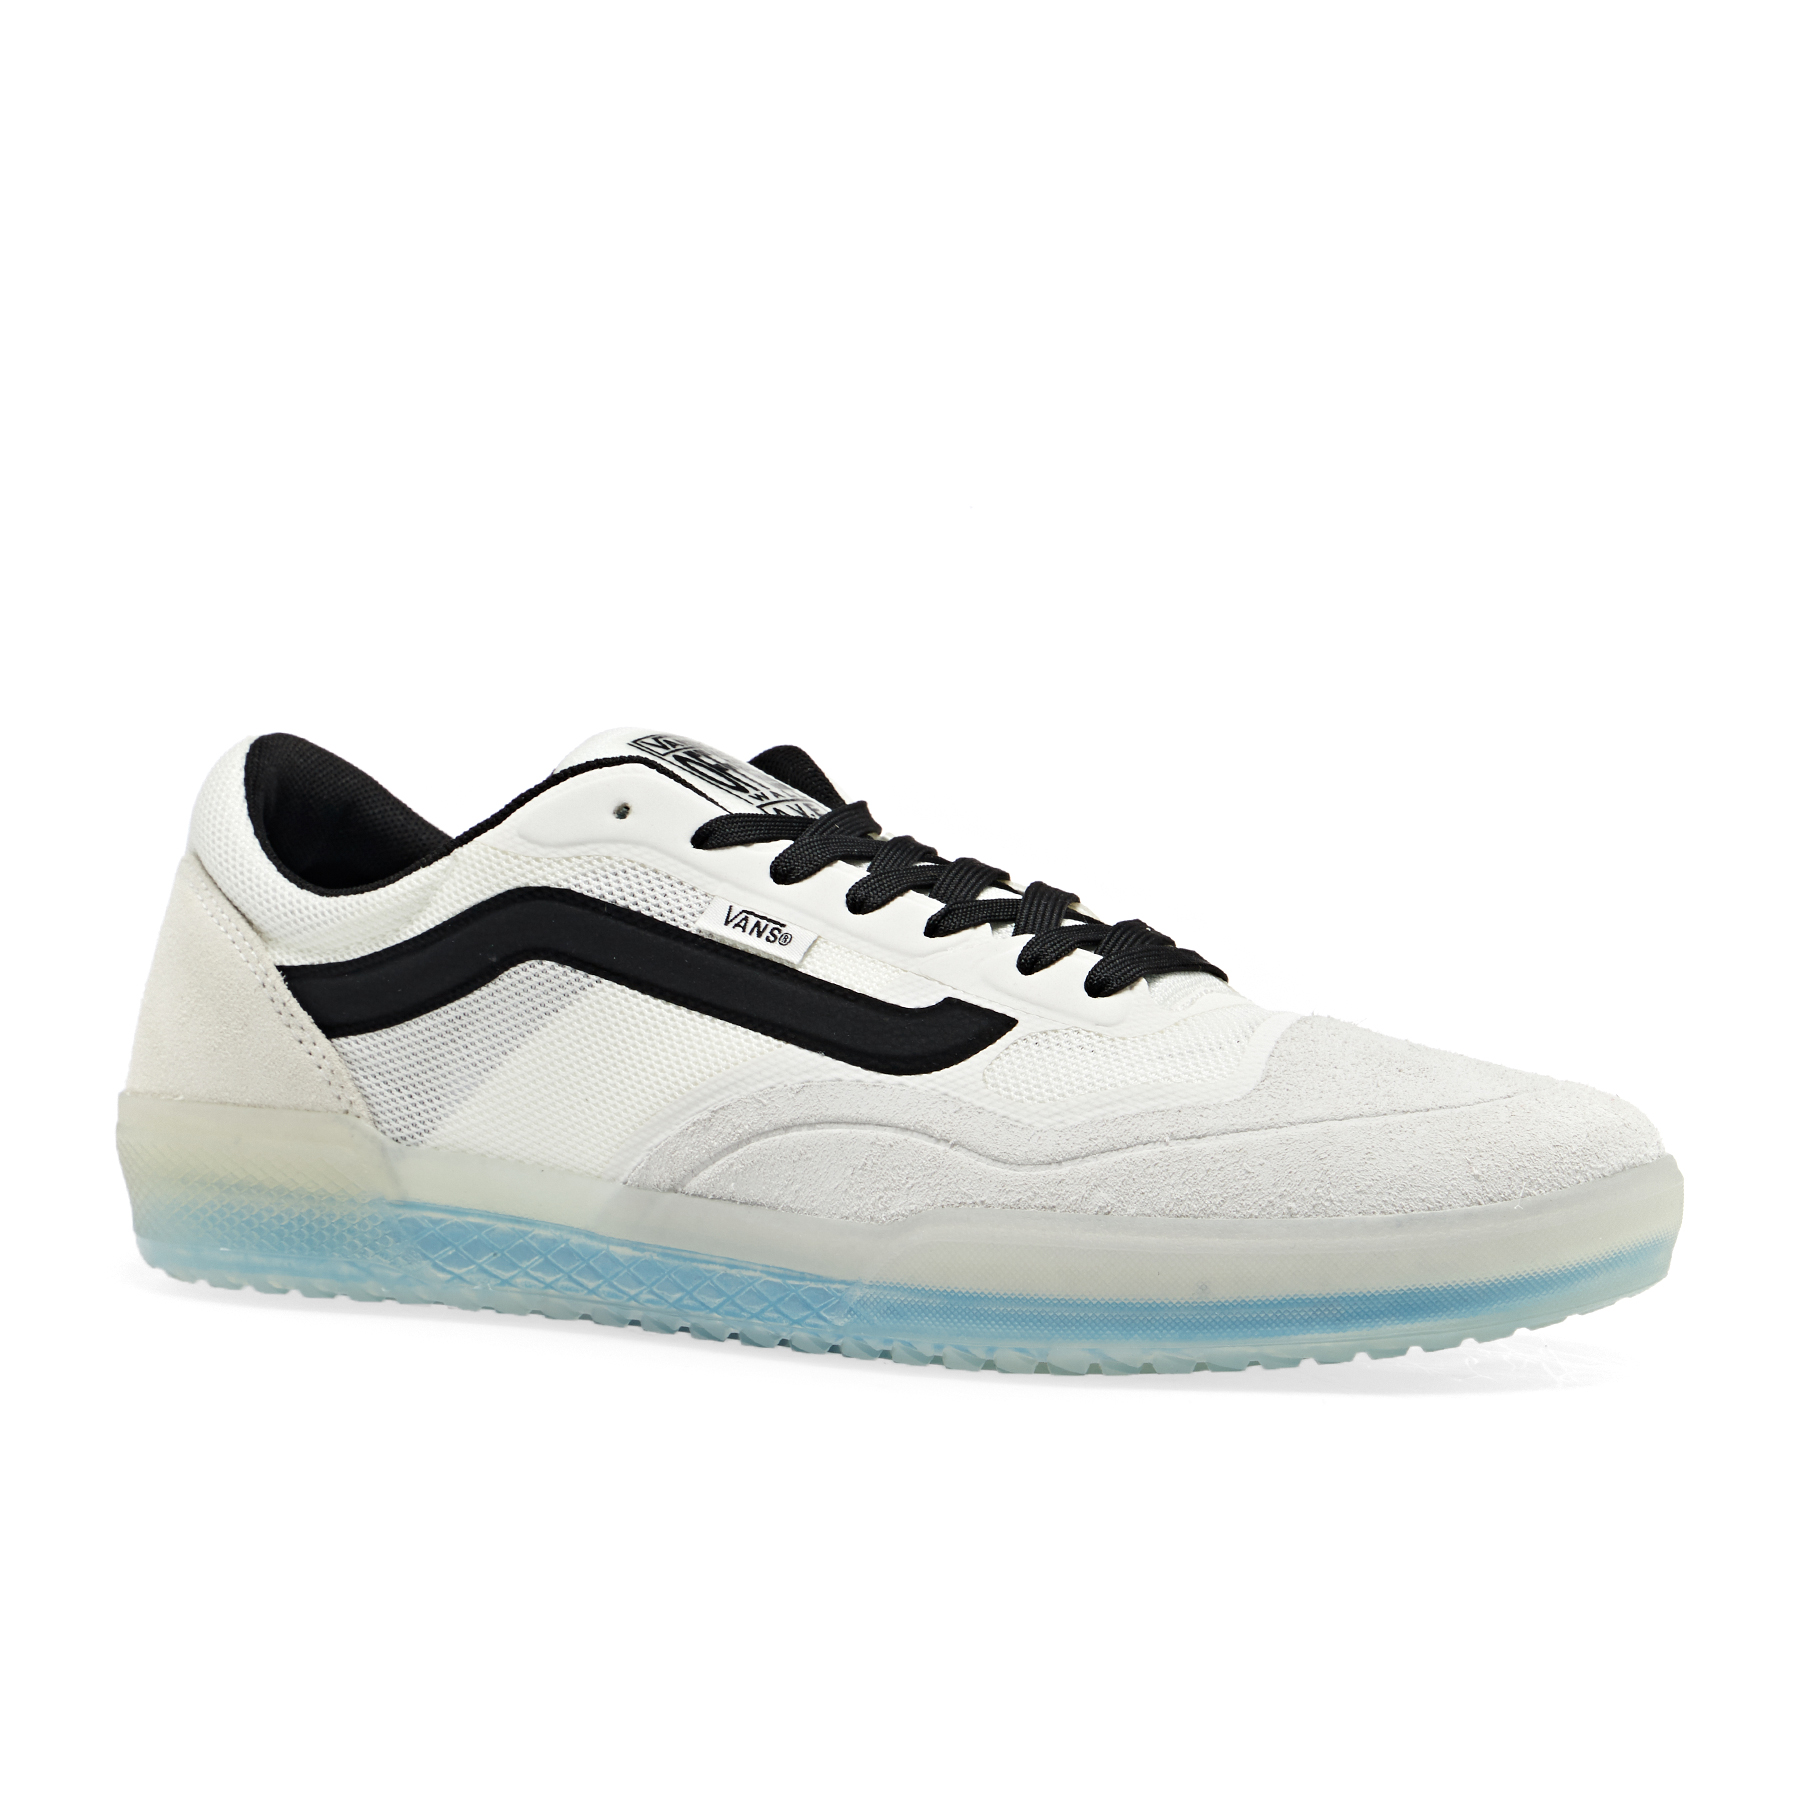 Vans Ave Pro Shoes - Free Delivery options on All Orders from Surfdome UK